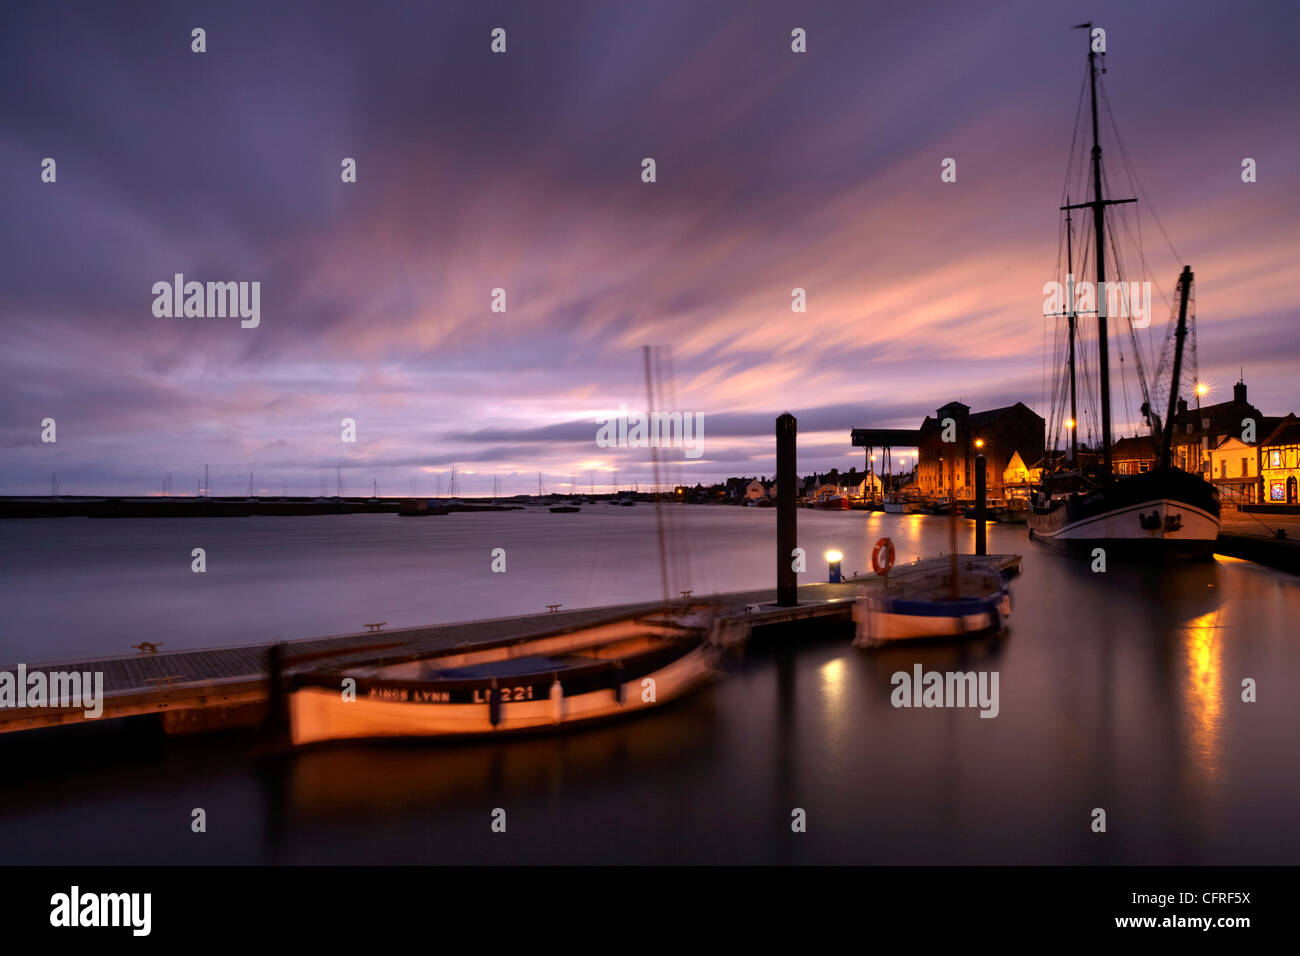 A moody winter morning showing the quay at Wells next the Sea, Norfolk, England, United Kingdom, Europe - Stock Image